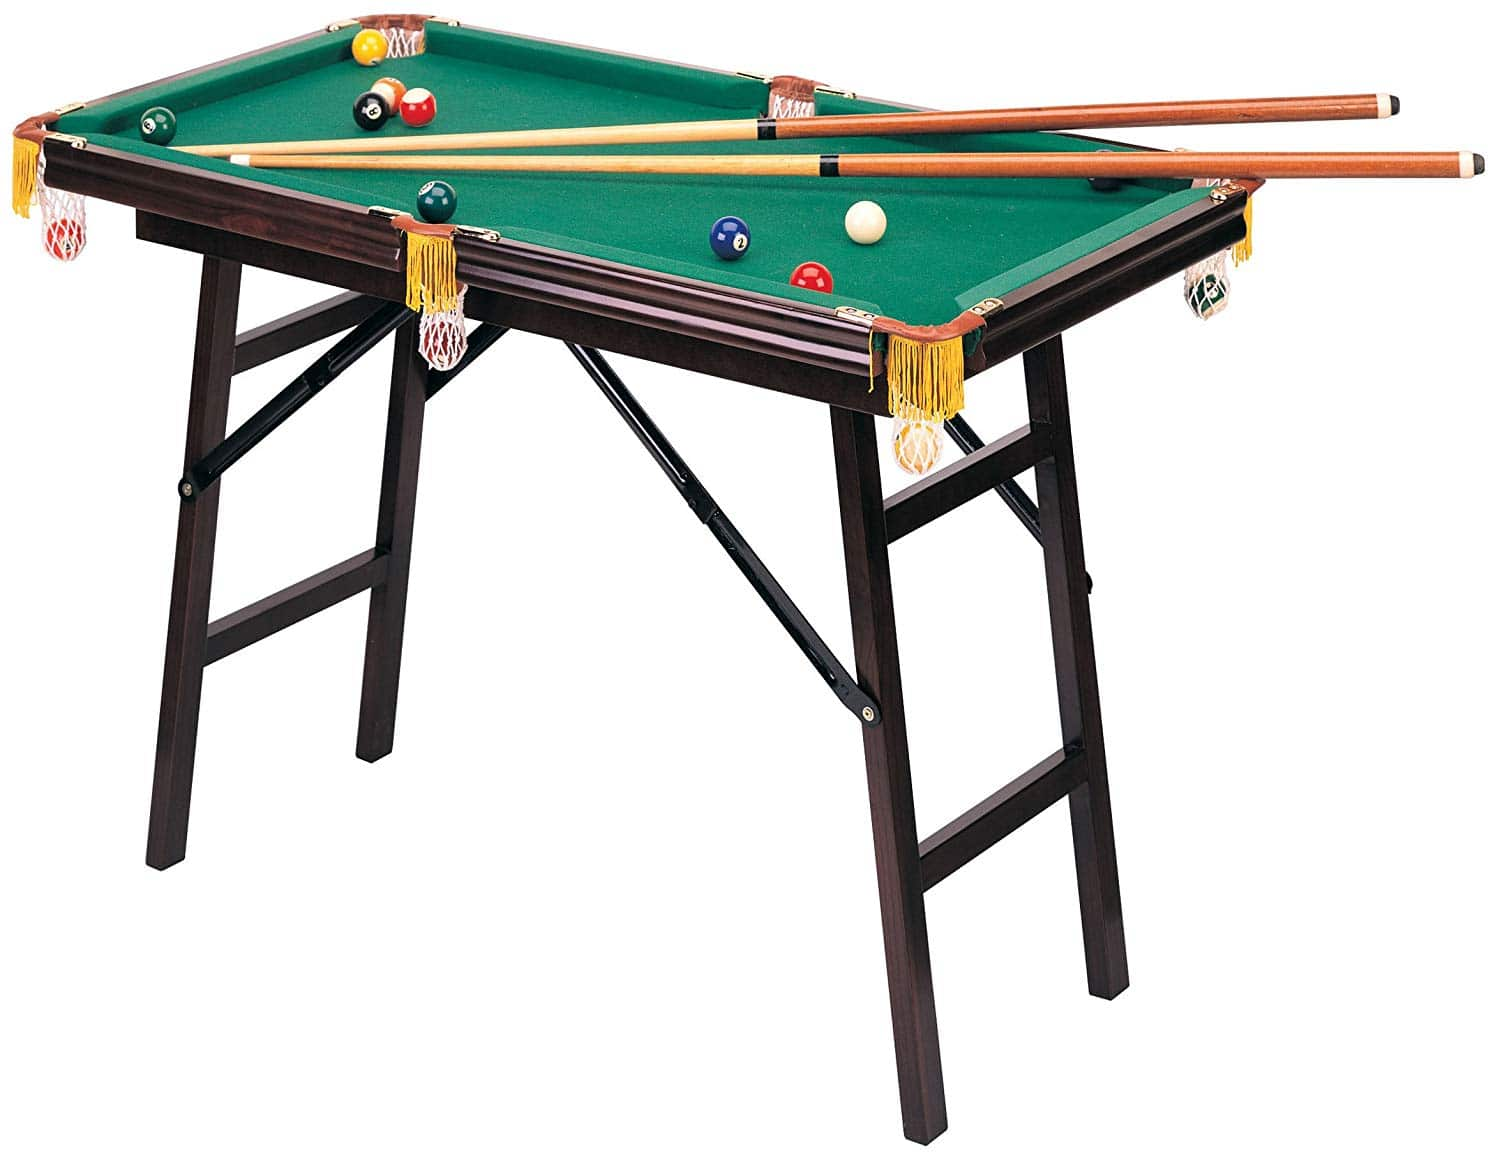 6 Best Portable Pool Tables Dec 2020 Reviews Buying Guide